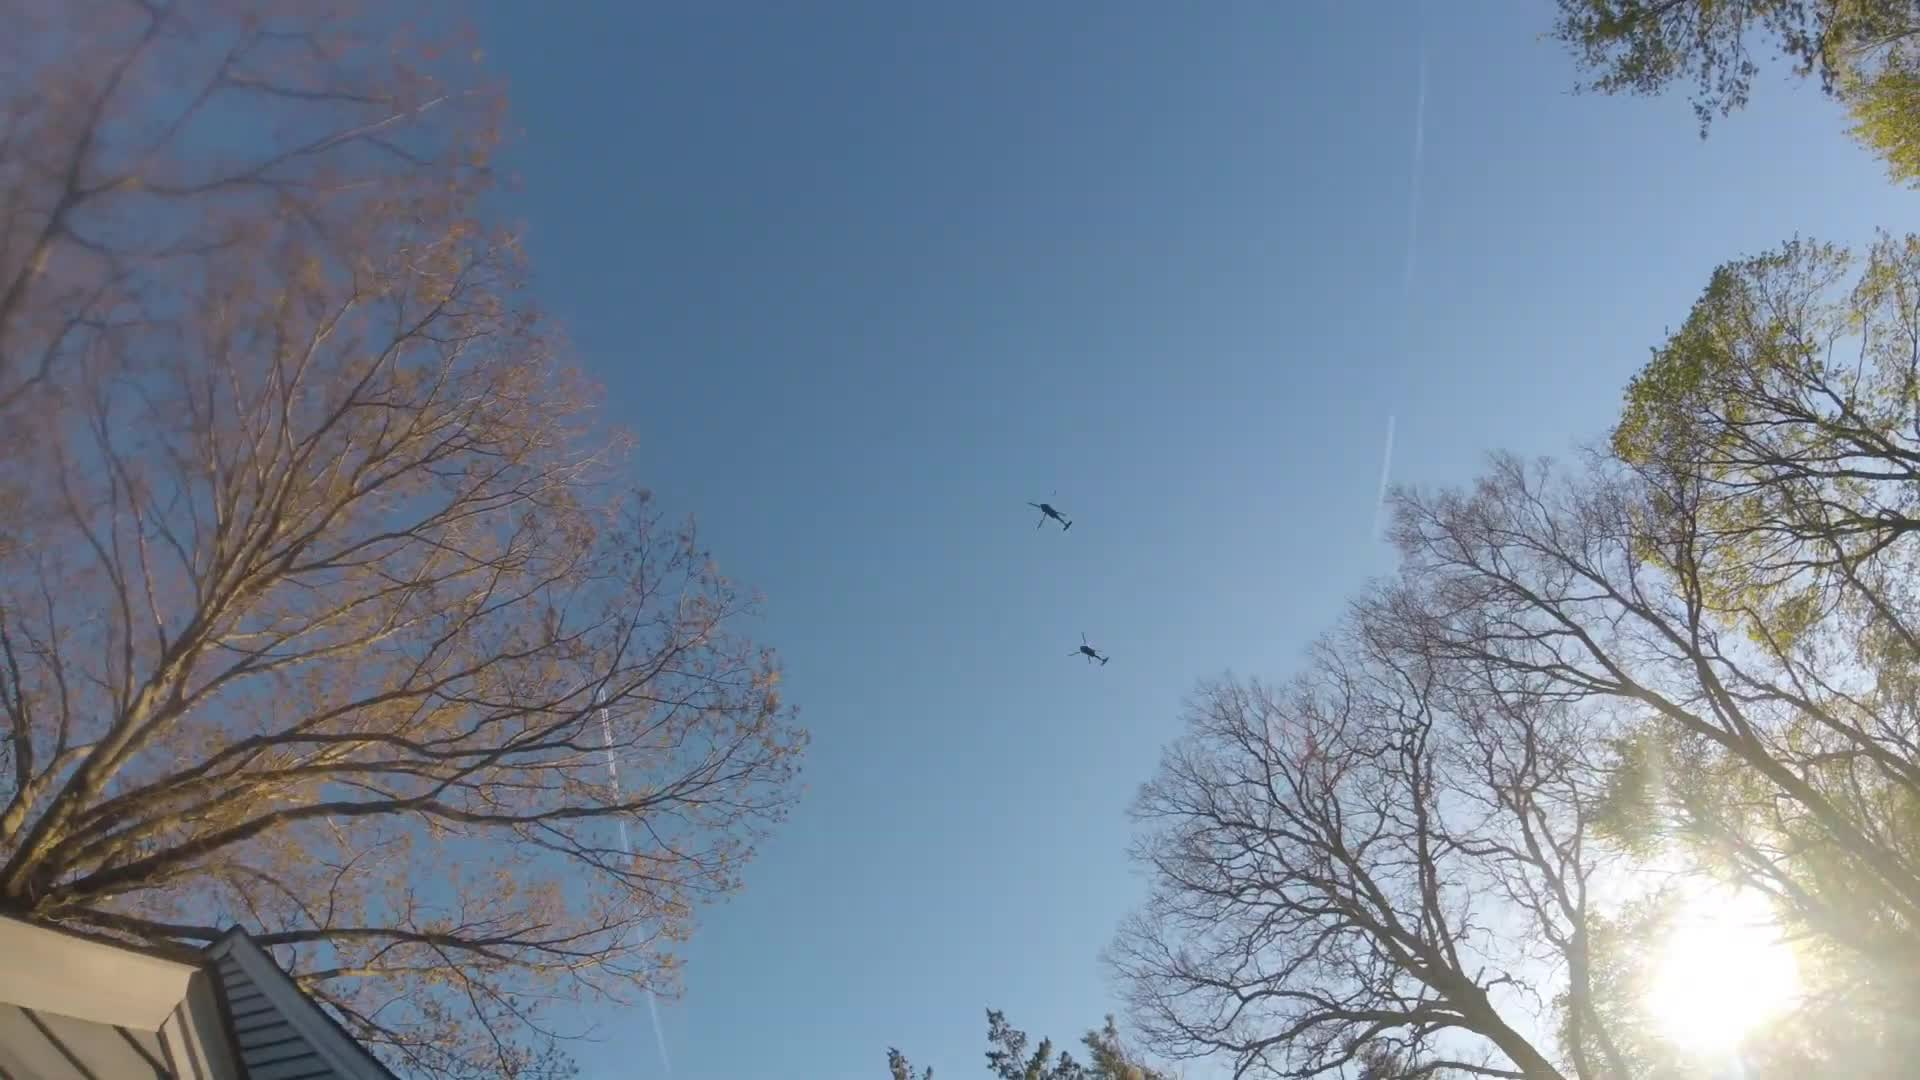 22/10/21 RAF  GANG STALKING SPY PLANE MY HOME UNSAFE FLY REPORT 21618